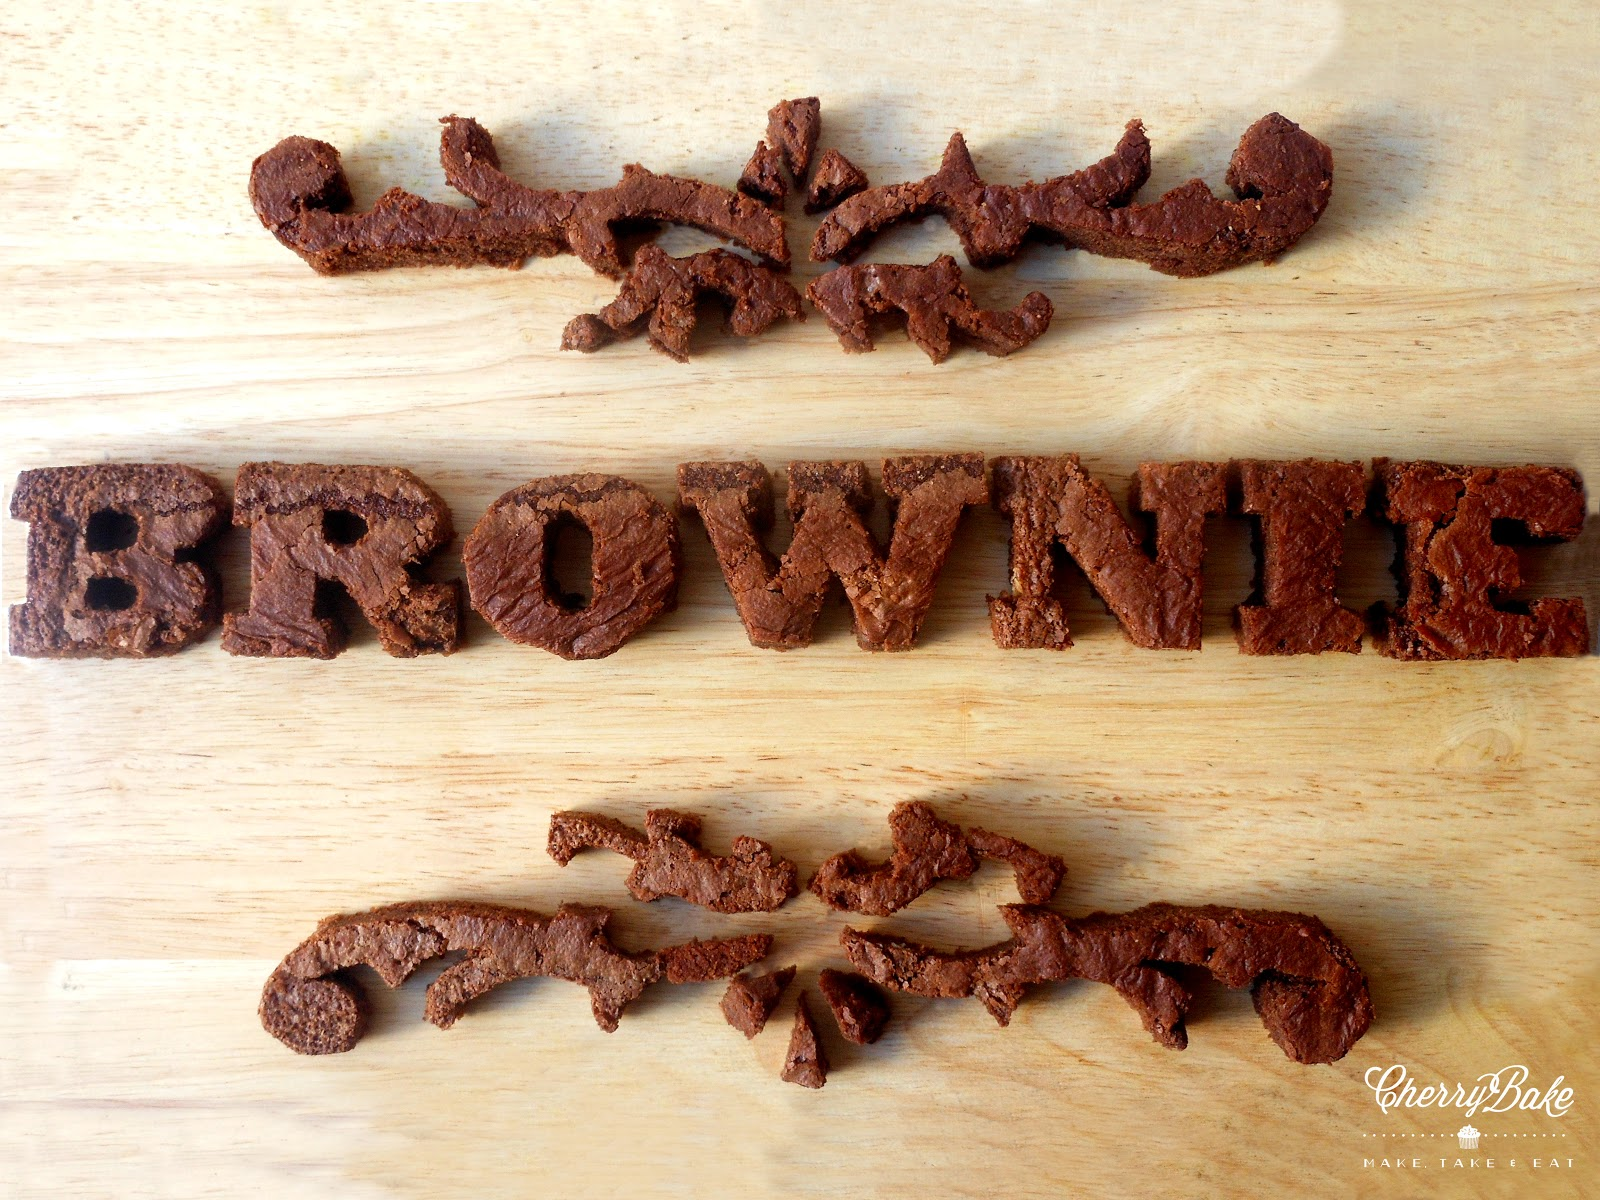 BROWNIE GANADOR DEL CONCURSO DA DEL BROWNIE :) :)